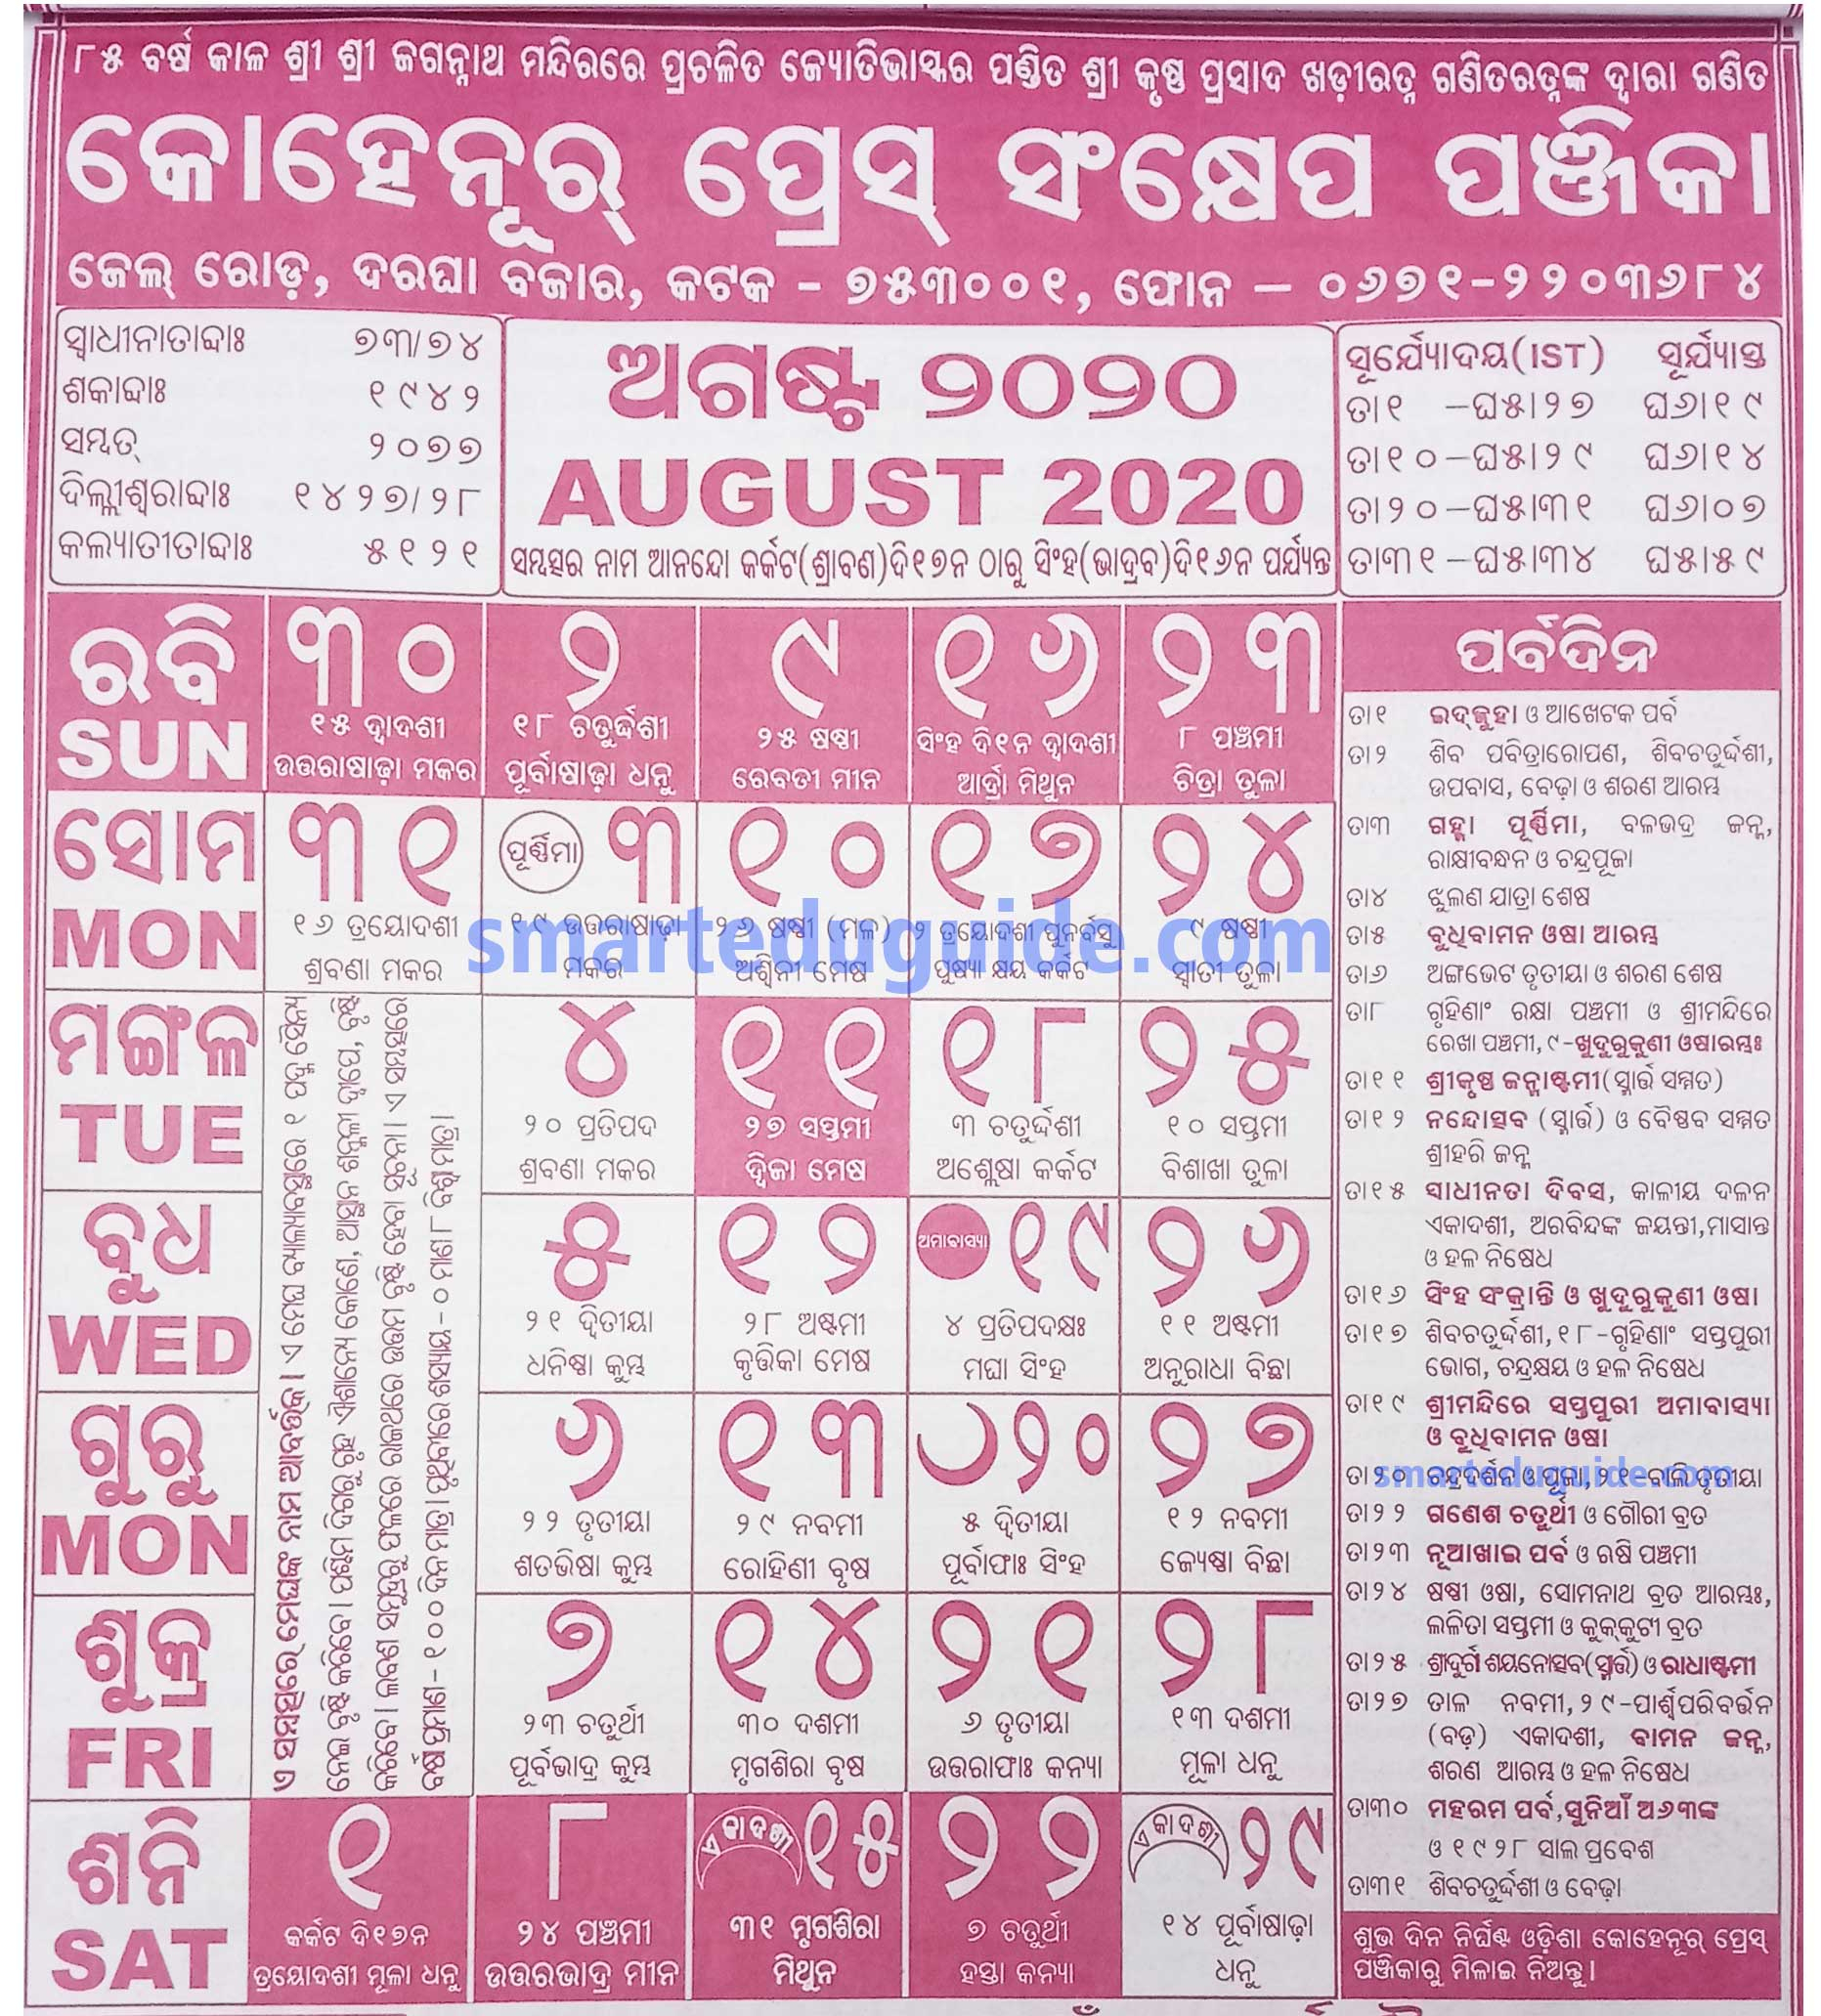 Free Download Pdf | Odishain pertaining to July 2020 Odia Calendar